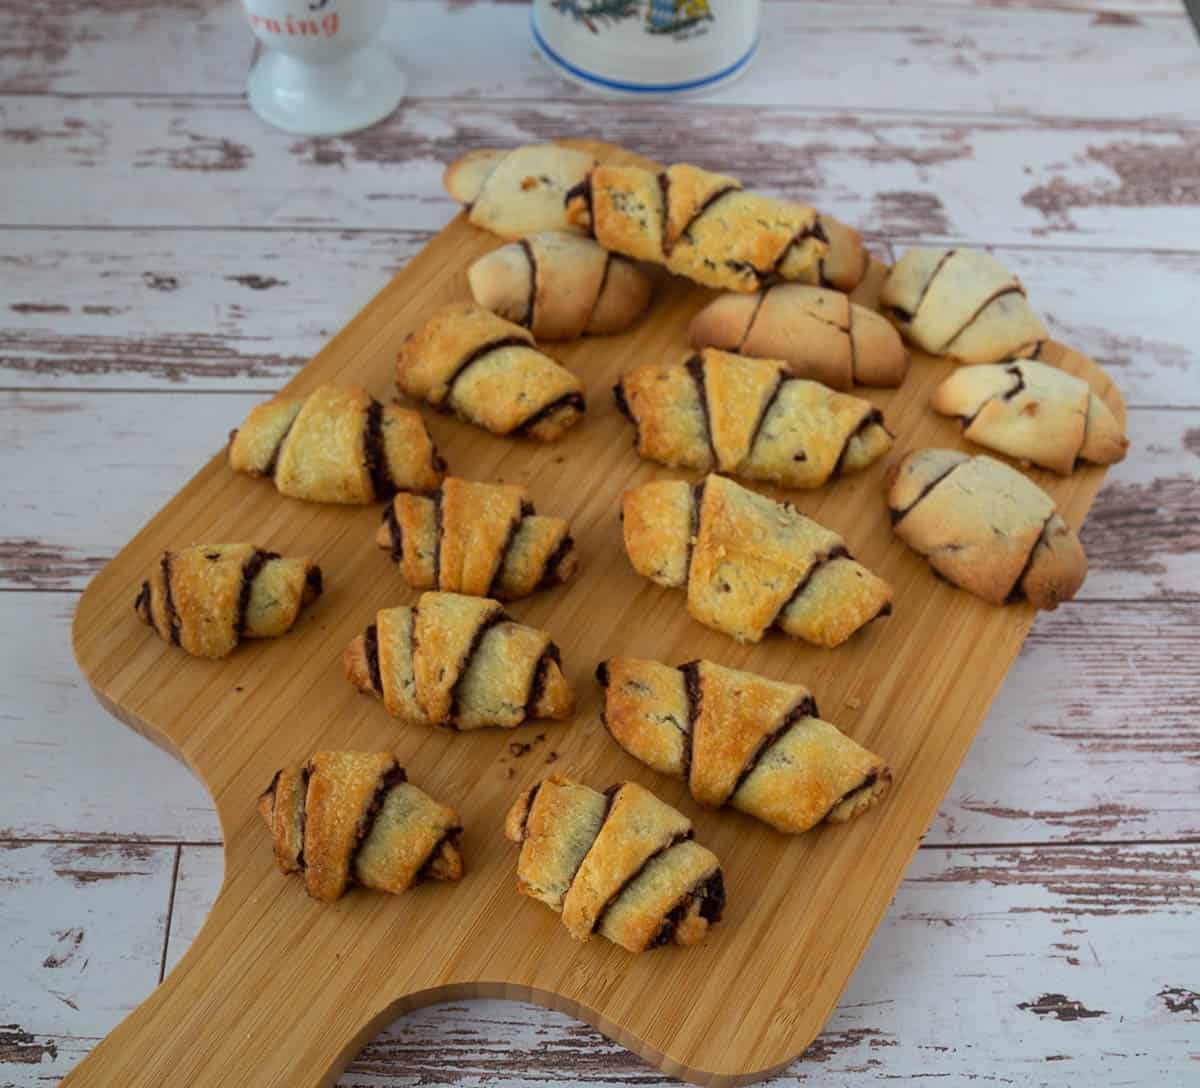 Chocolate rugelach on a wooden tray.